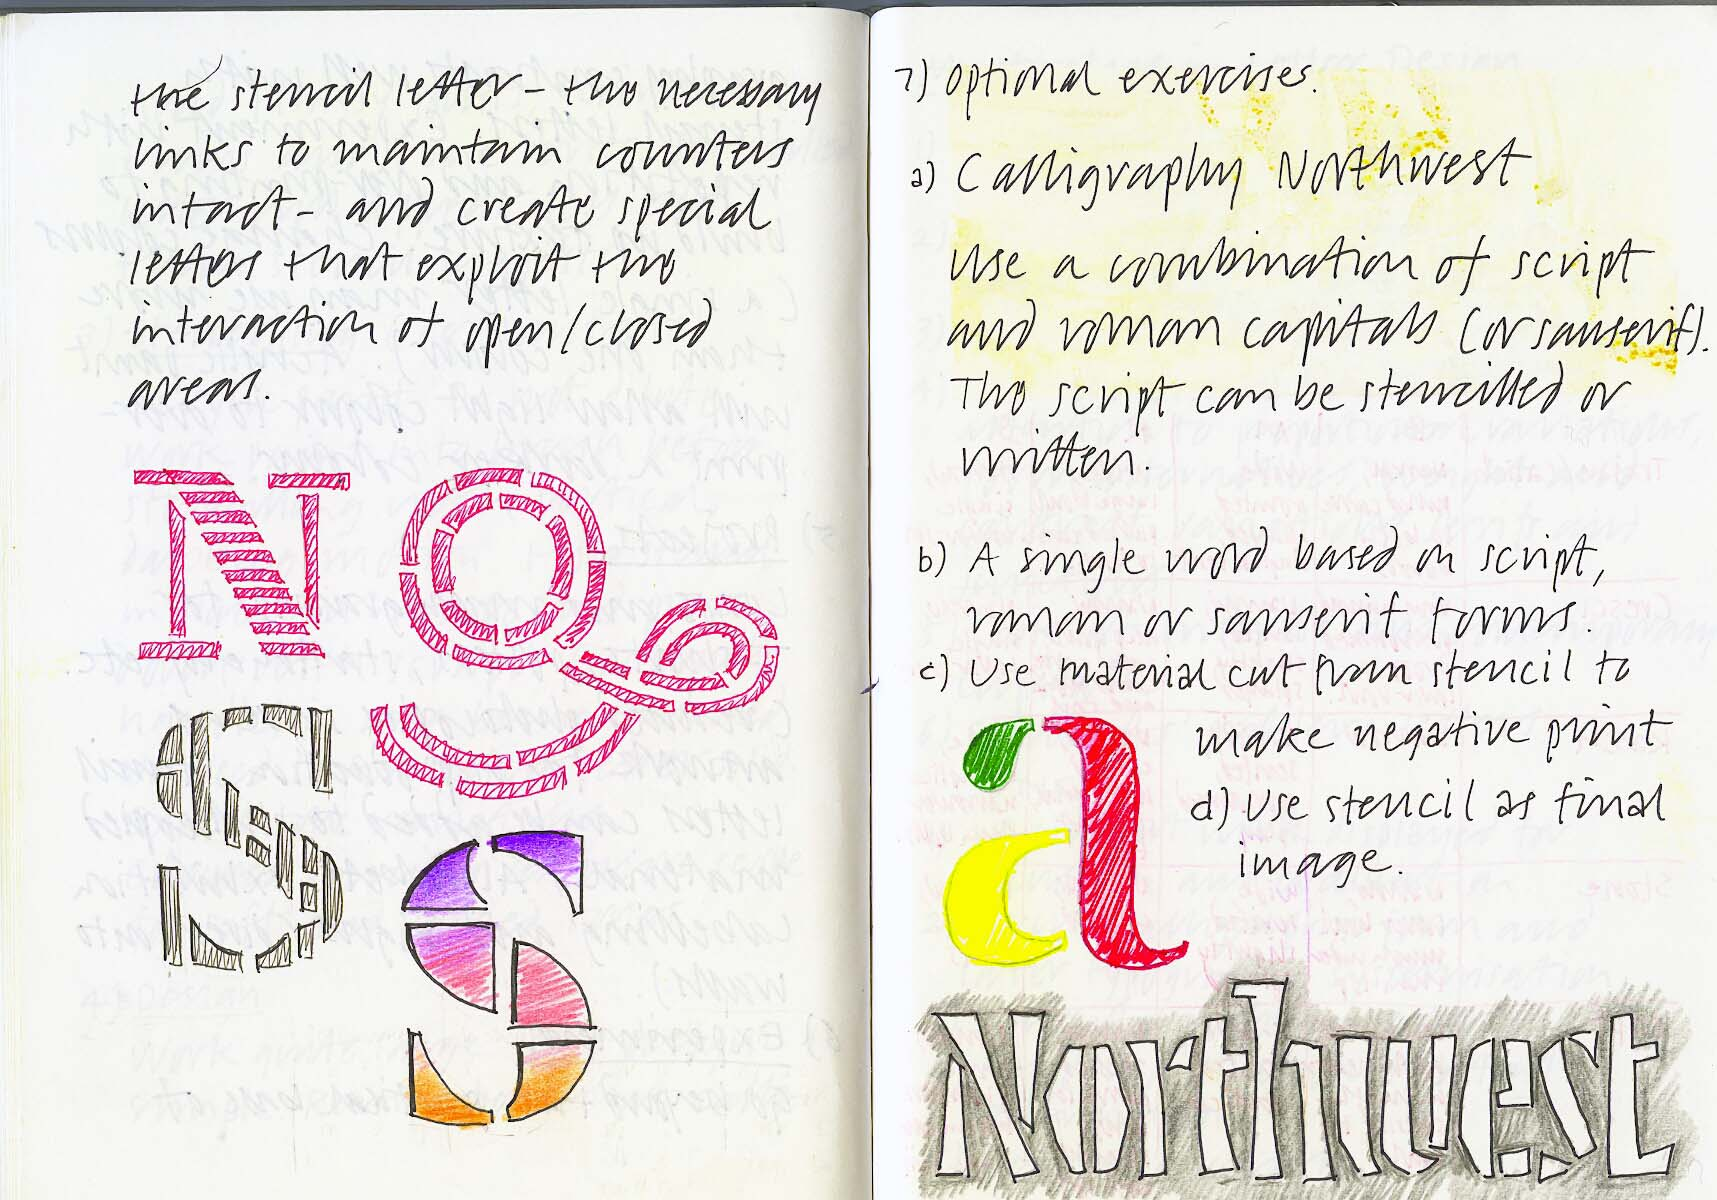 Portland 1991 – Calligraphy Northwest #3